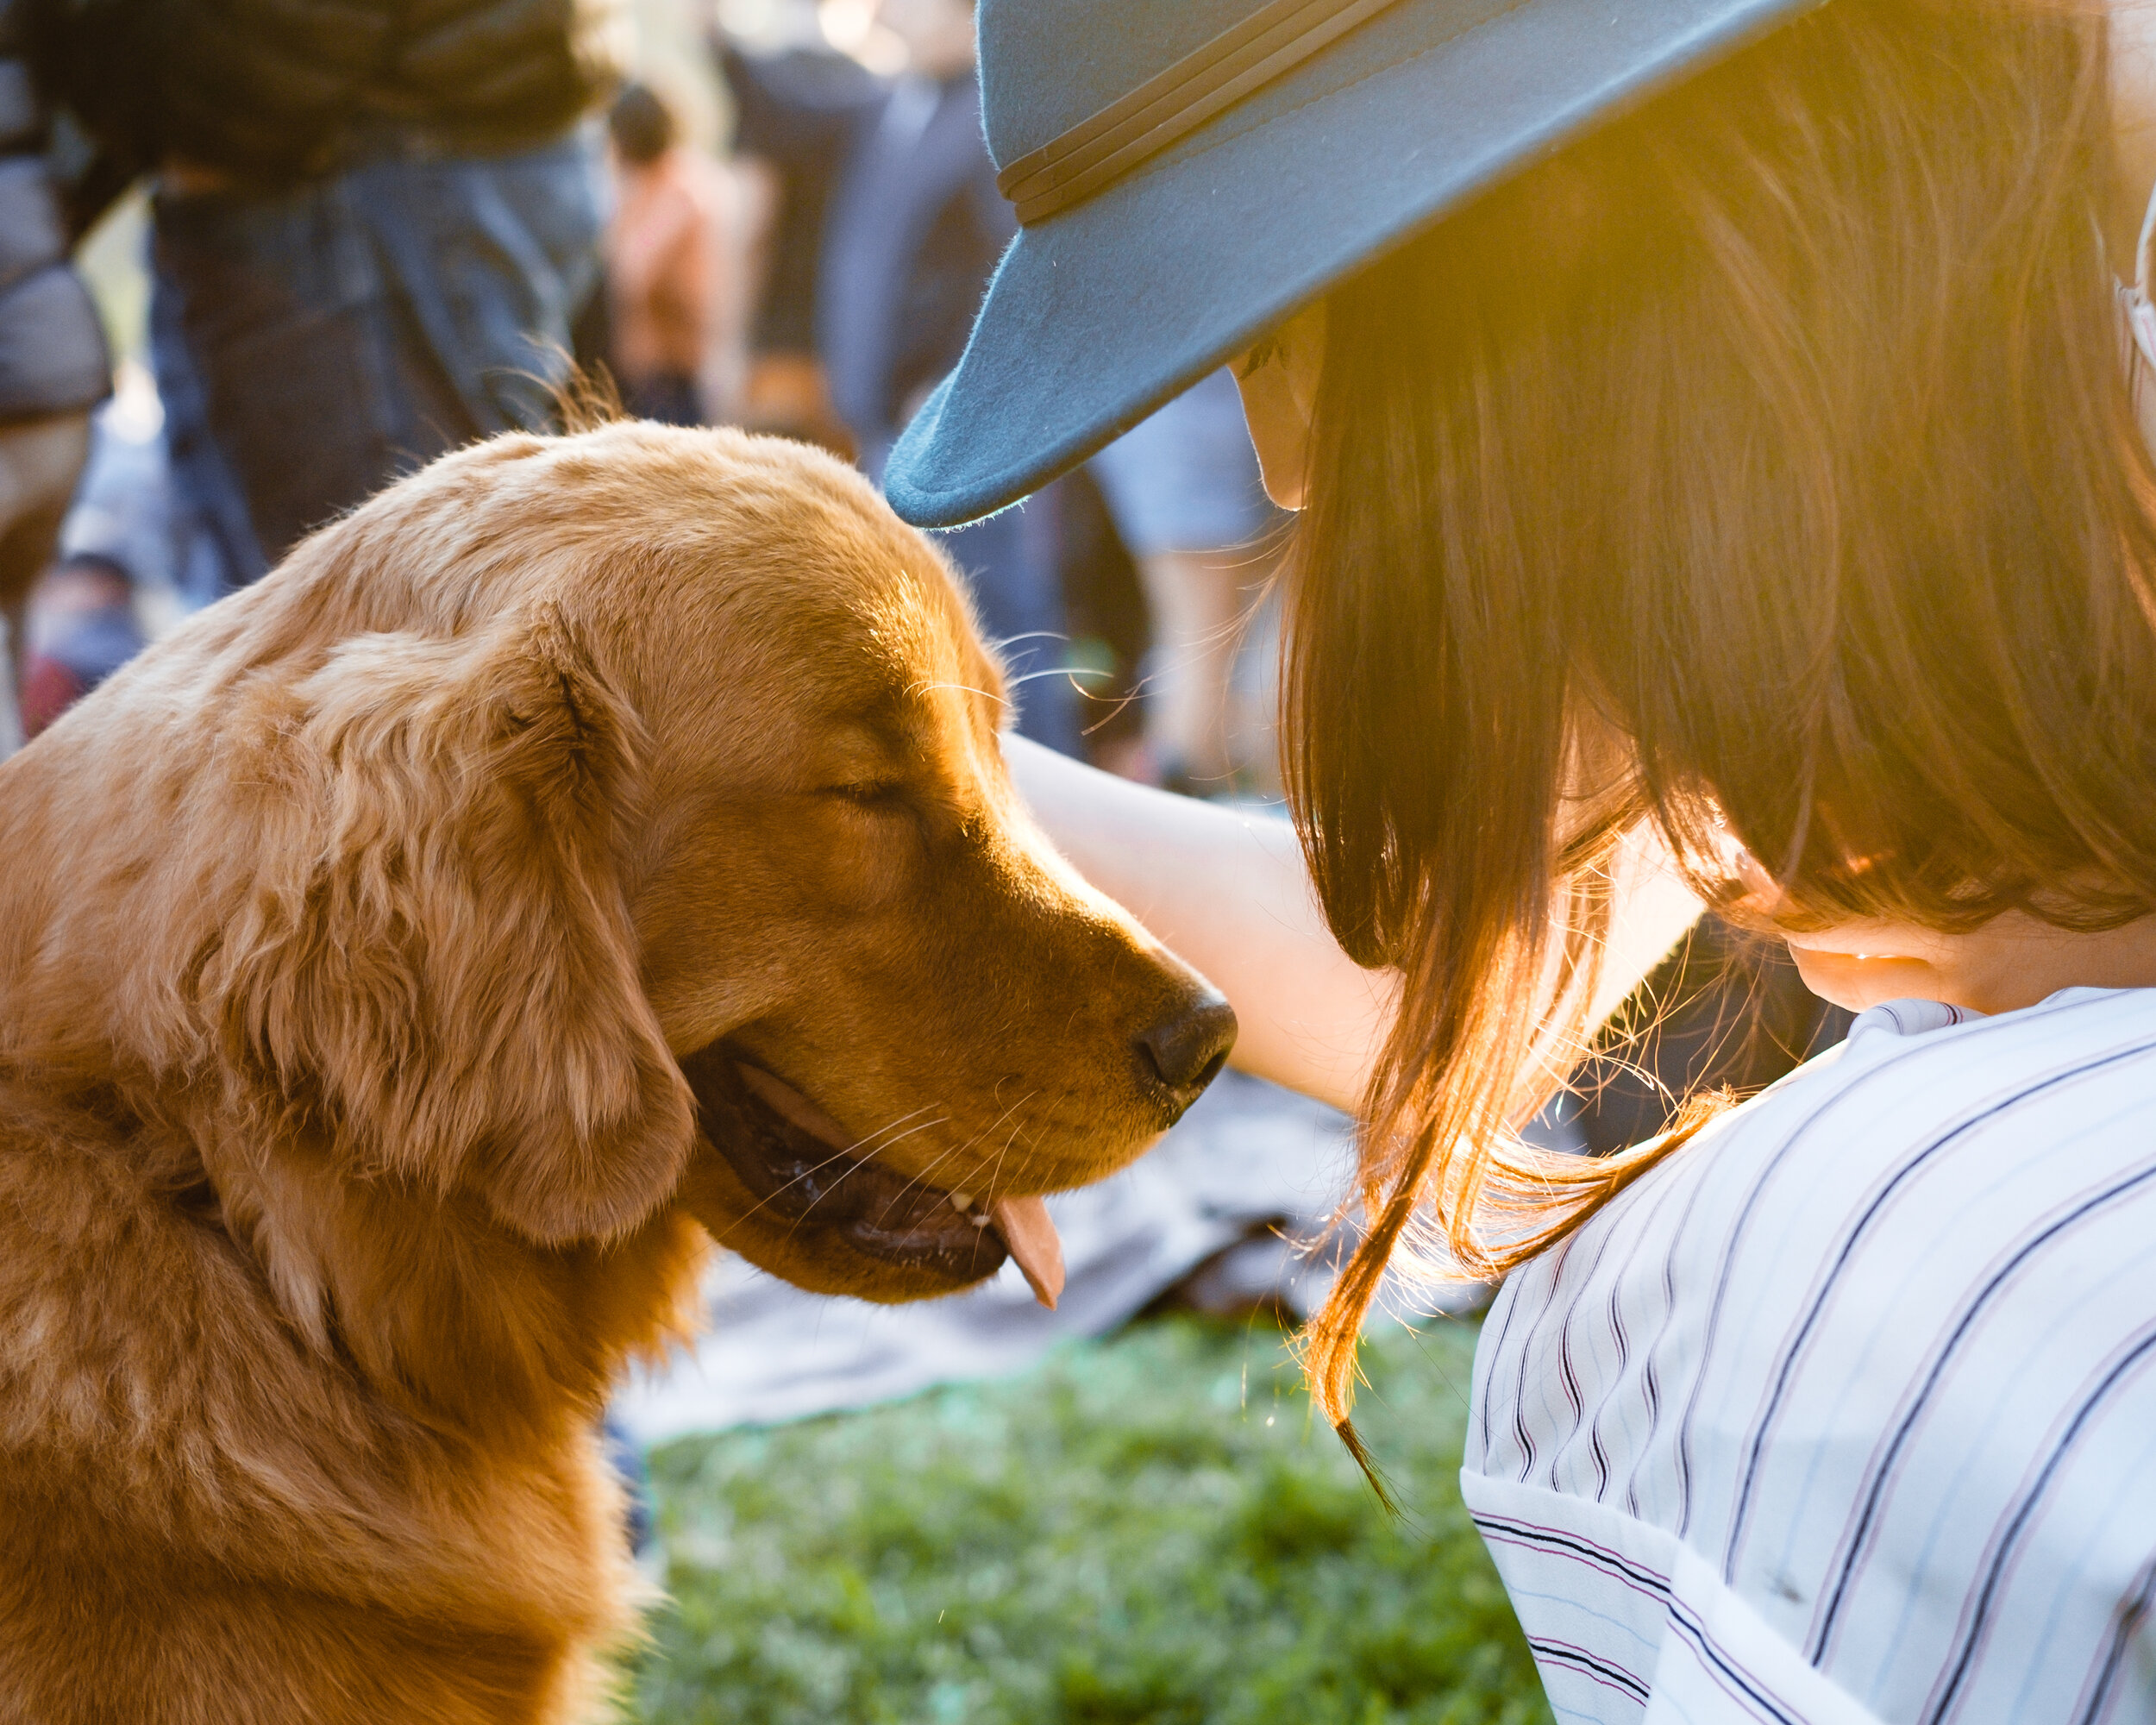 10/19 - 10/20 - 24% OF PET OWNERS SAID THEY WOULD RATHER DO THIS WITH THEIR PET THAN THEIR SIGNIFICANT OTHER - WHAT IS IT? — ANSWER: TAKE A SELFIE